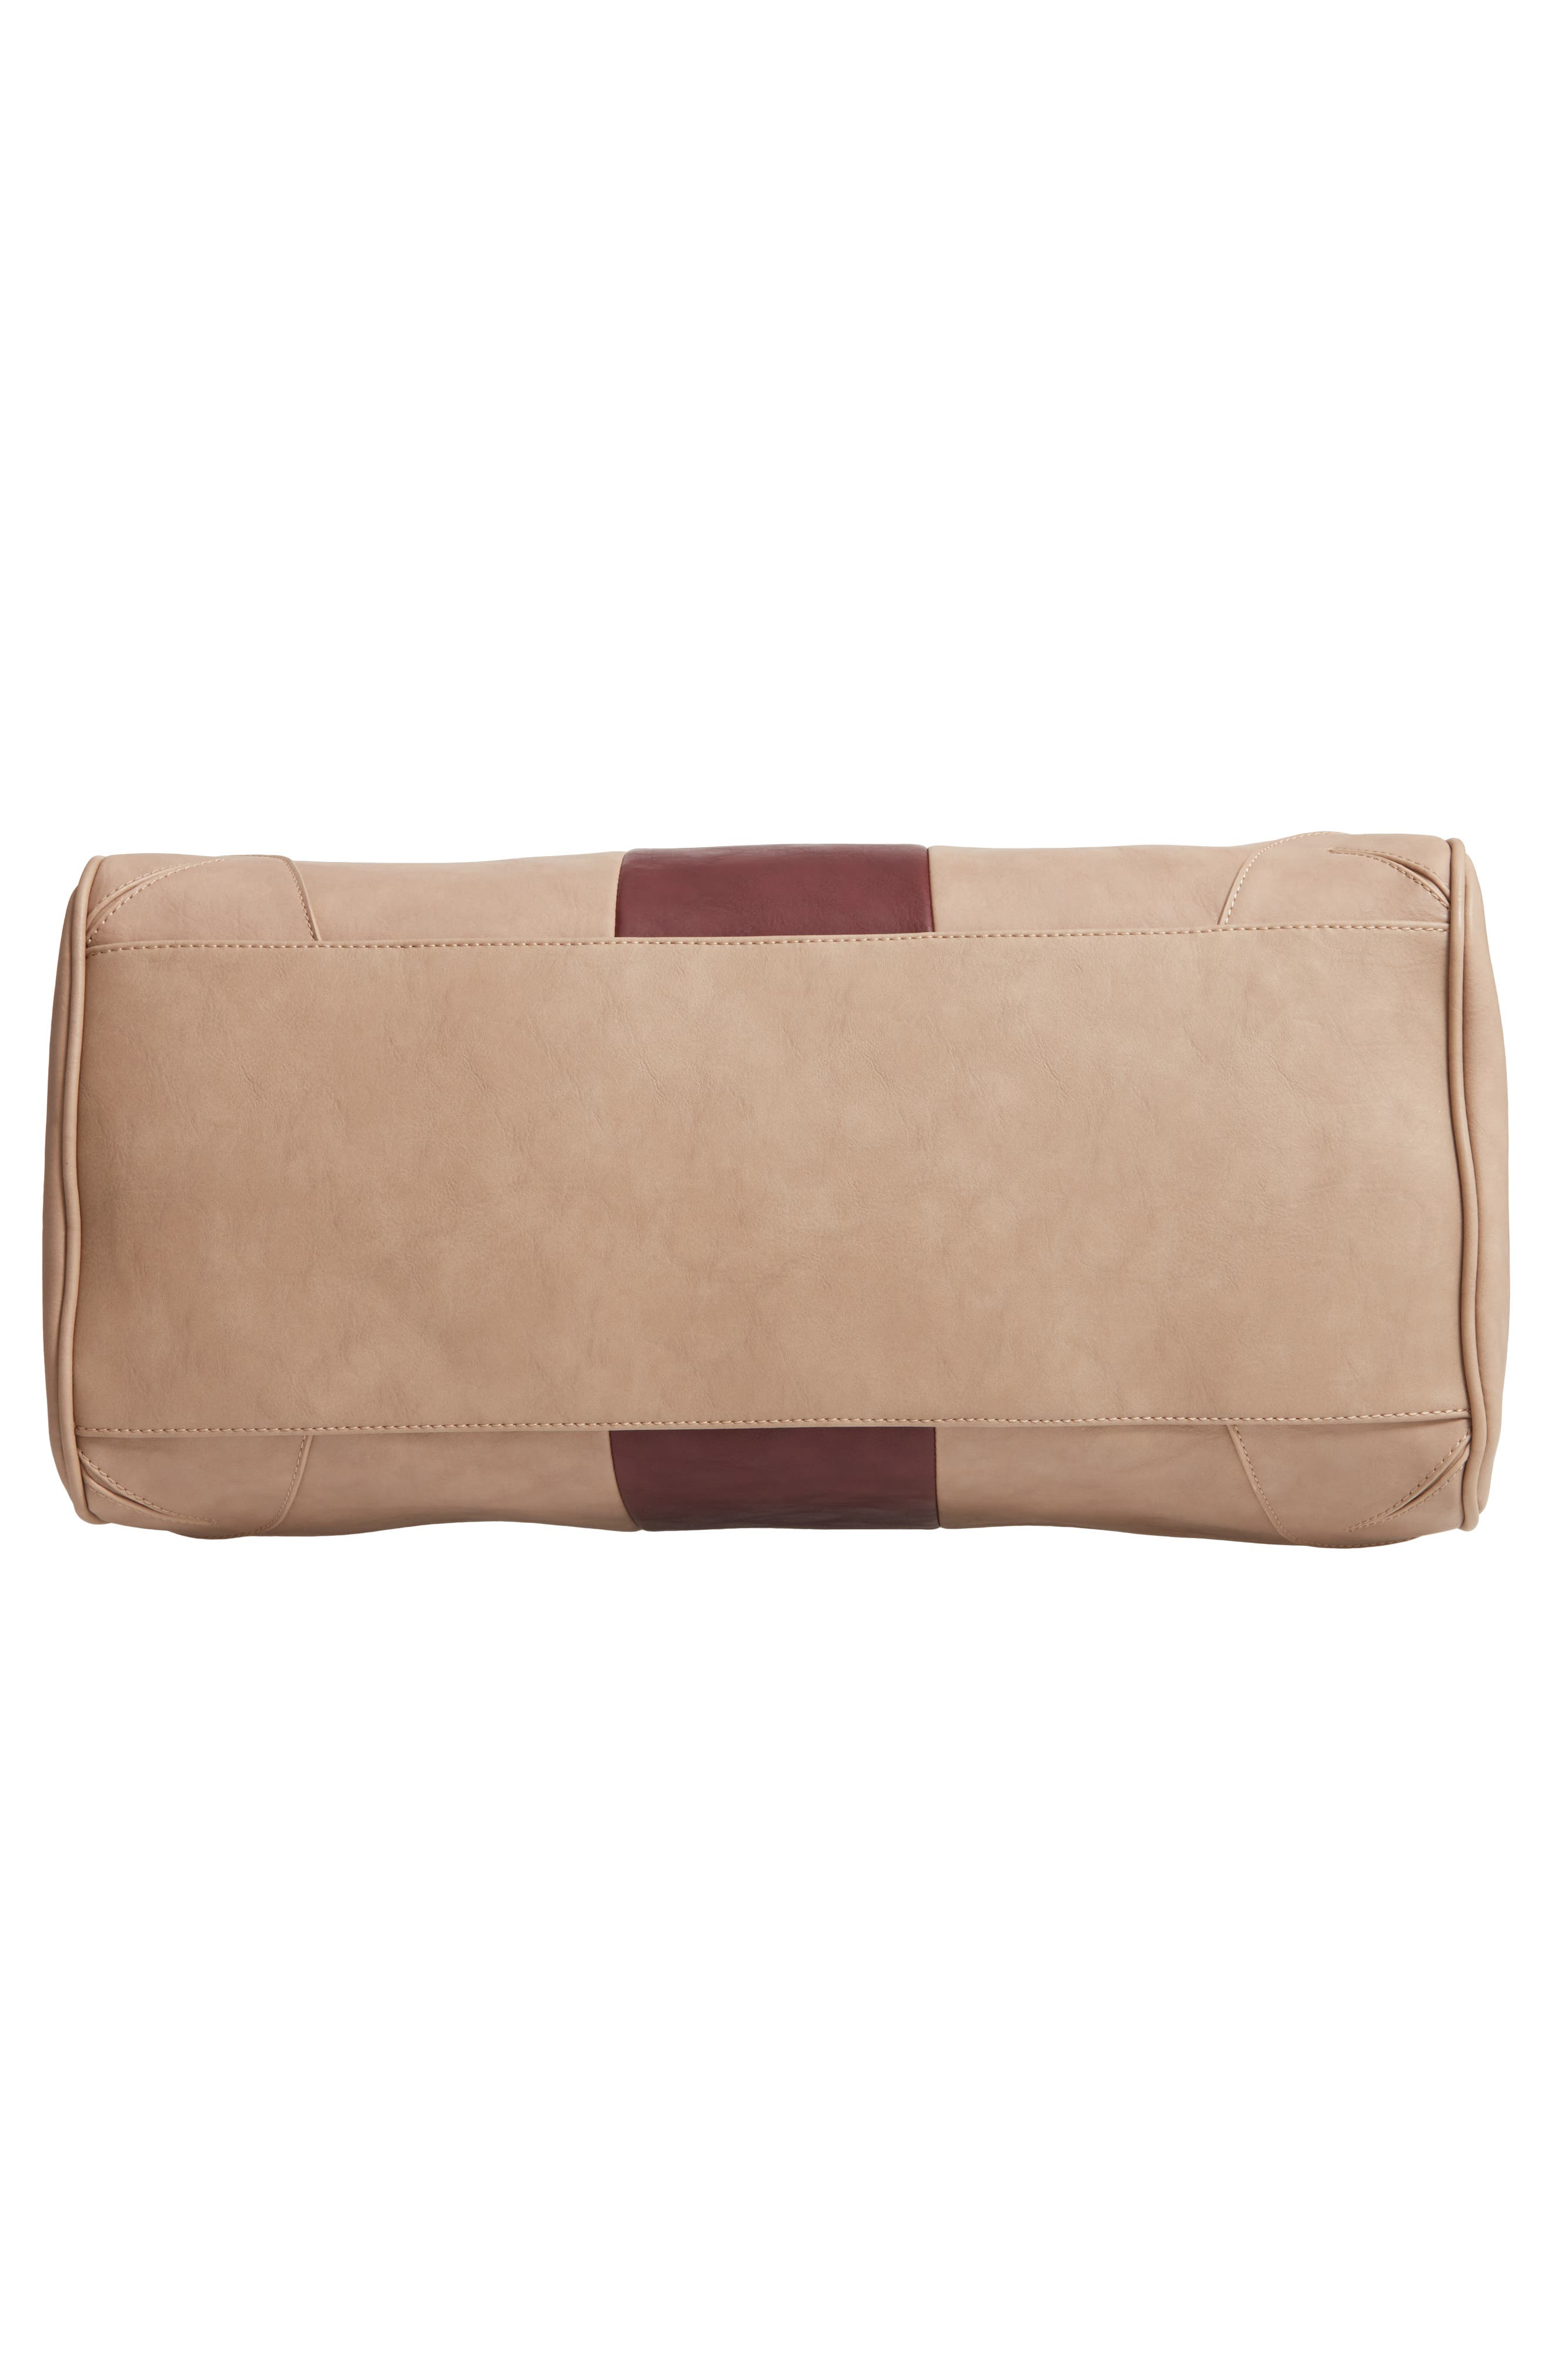 'Robin' Faux Leather Weekend Bag,                             Alternate thumbnail 6, color,                             TAUPE